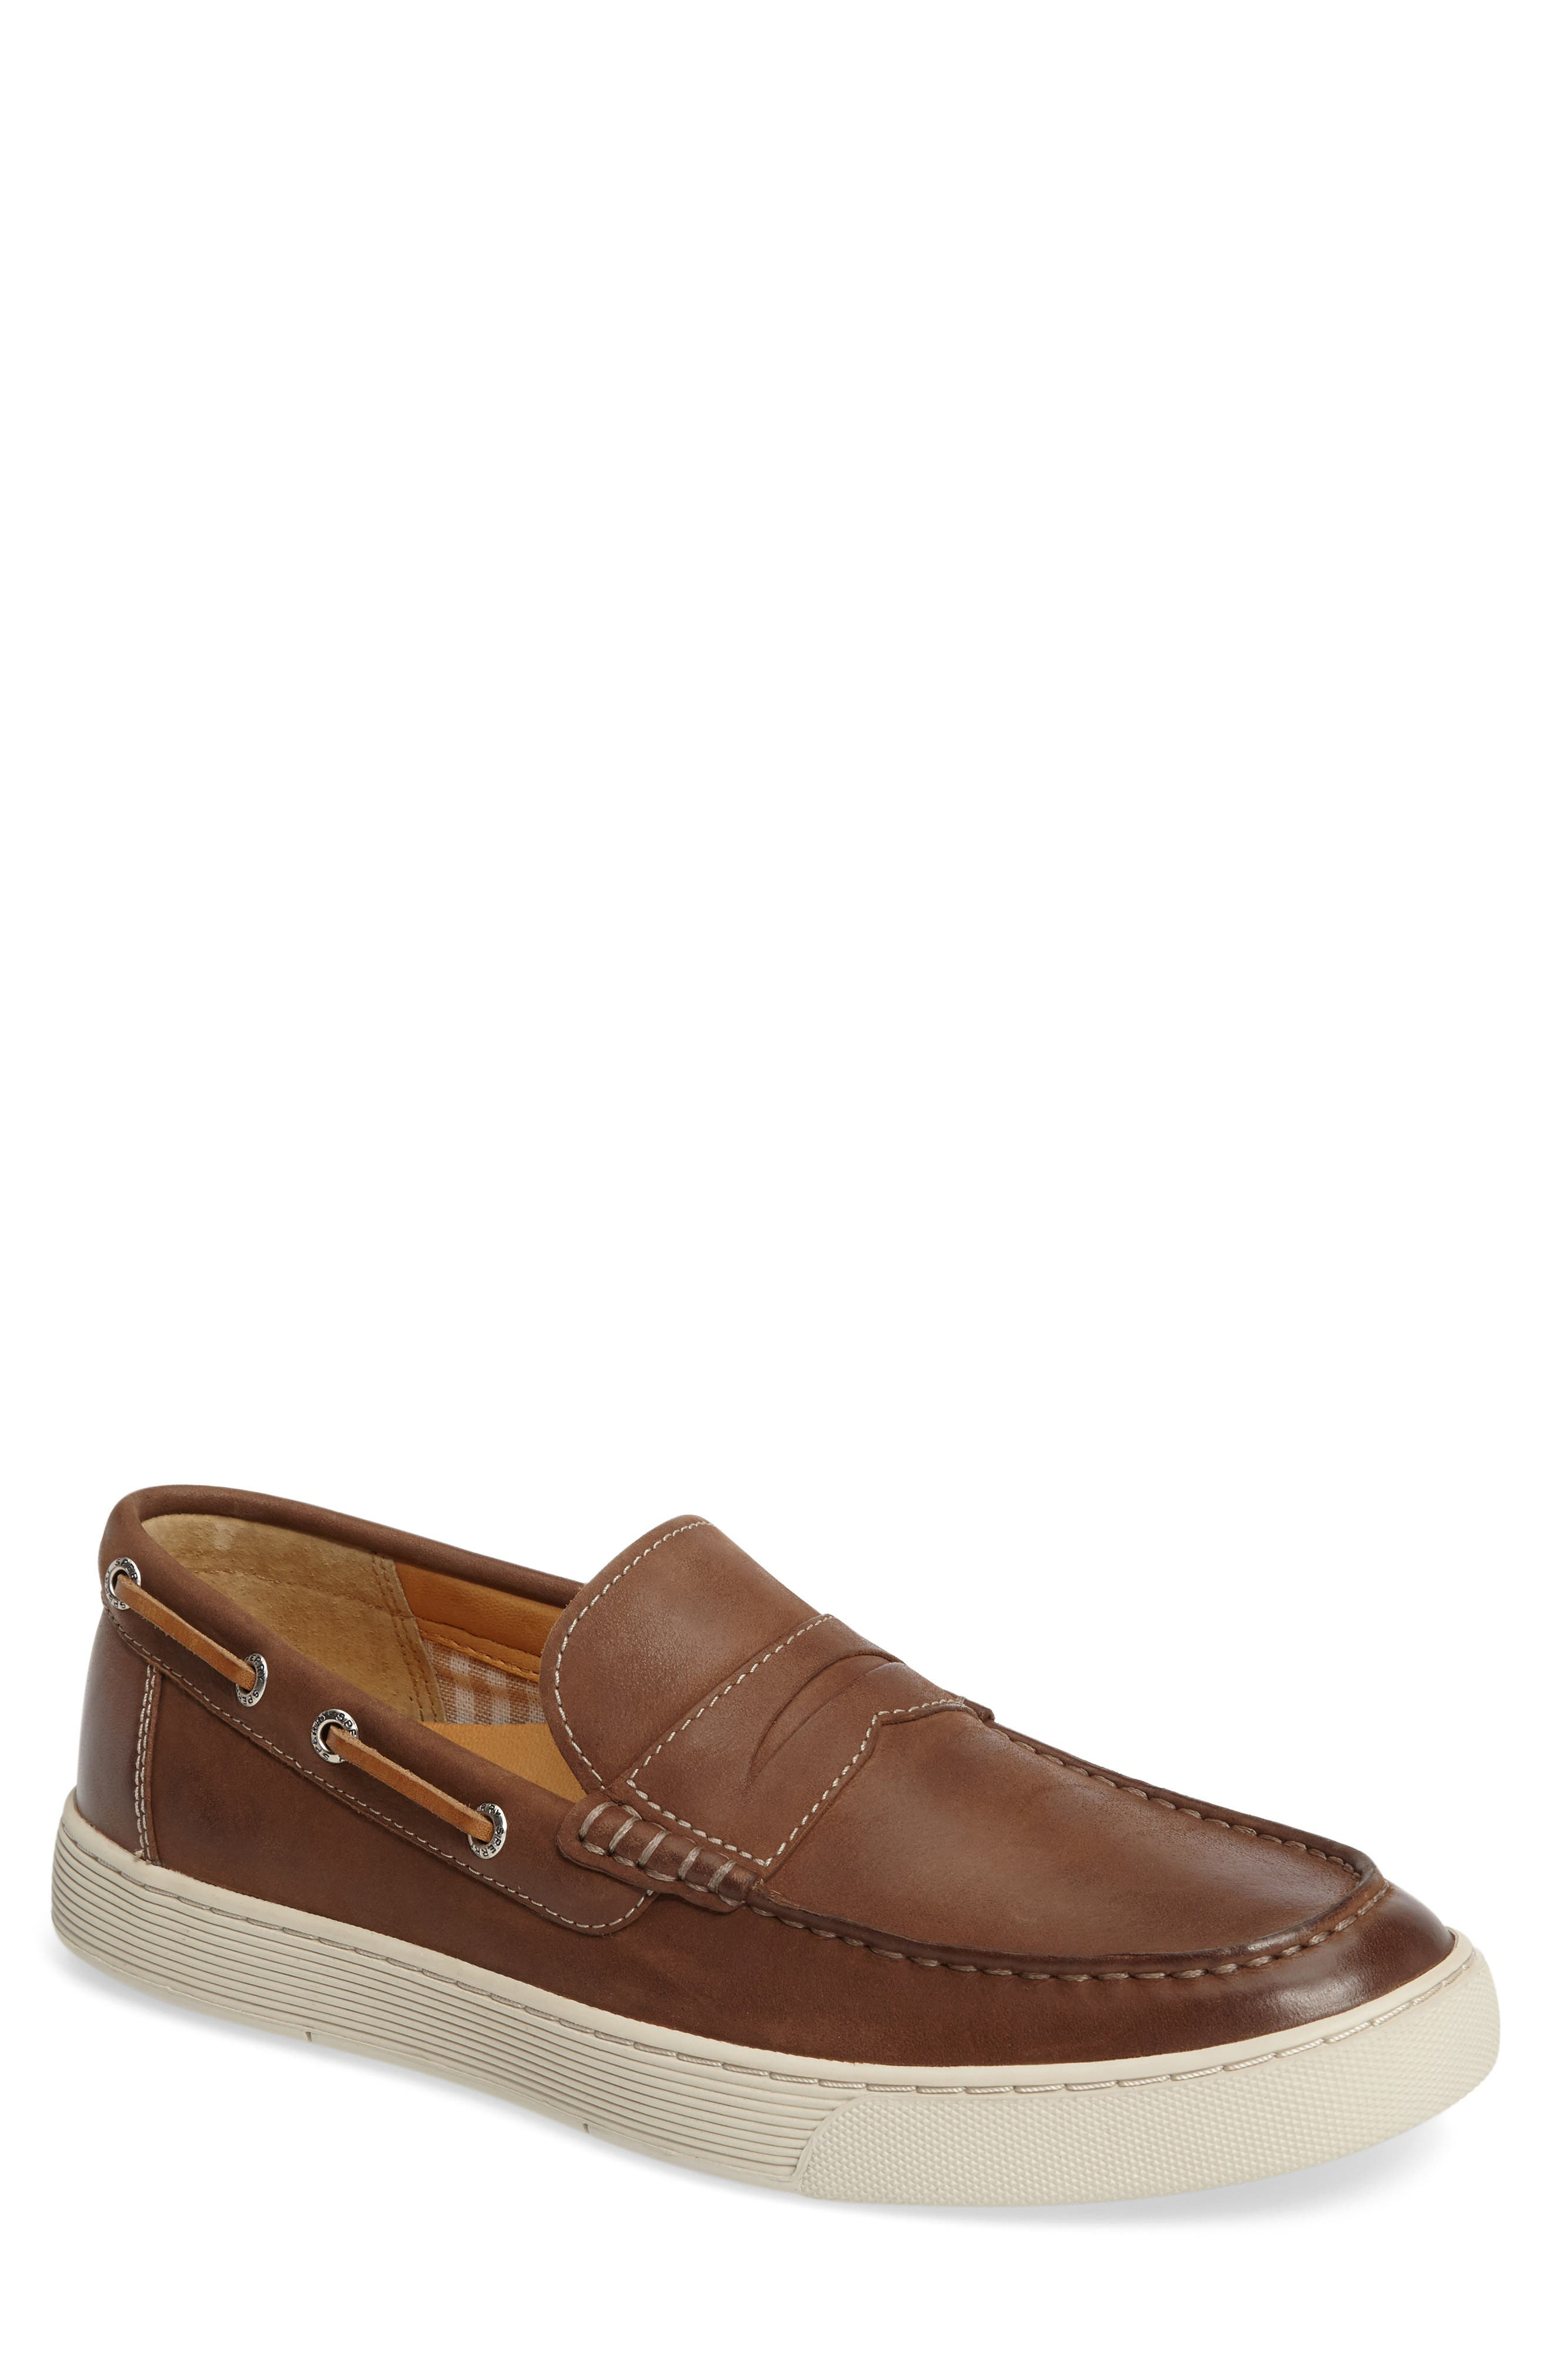 Gold Cup Penny Loafer,                             Main thumbnail 2, color,